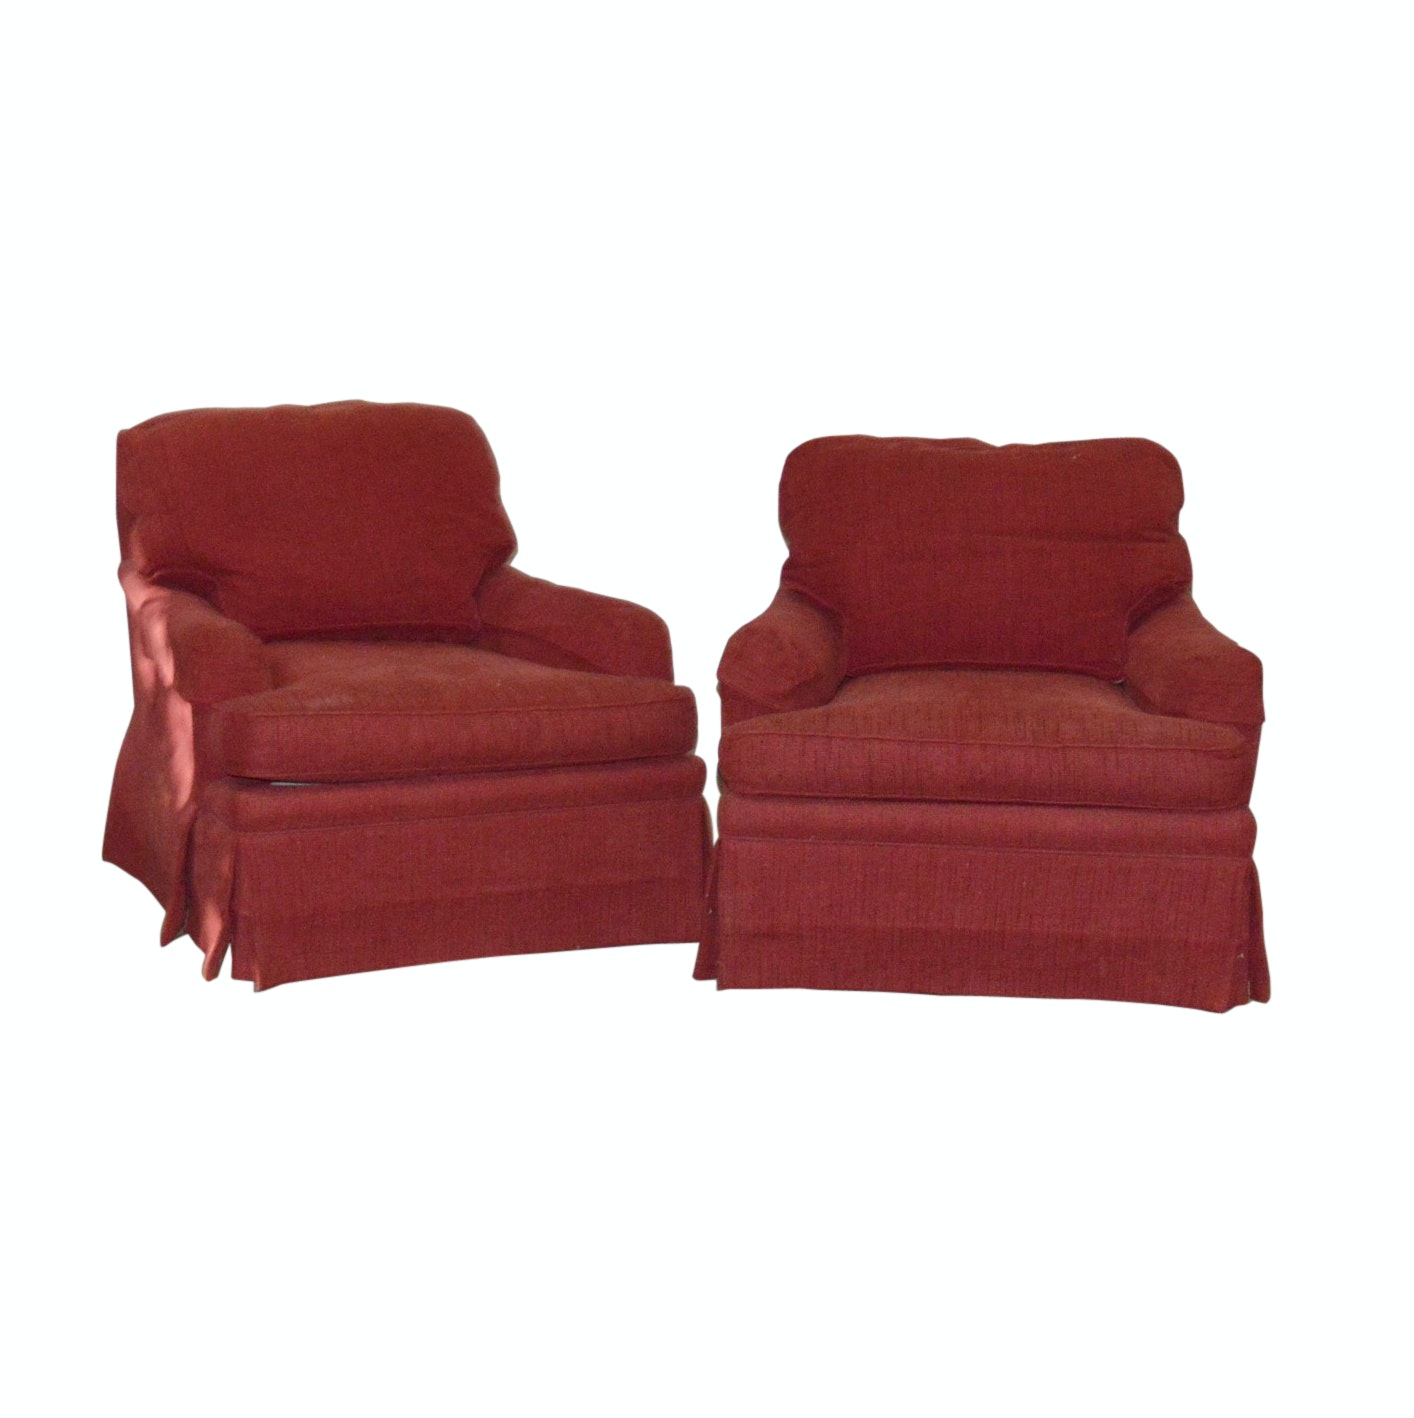 Pair of Contemporary Red Upholstered Swivel Armchairs by ISENHOUR